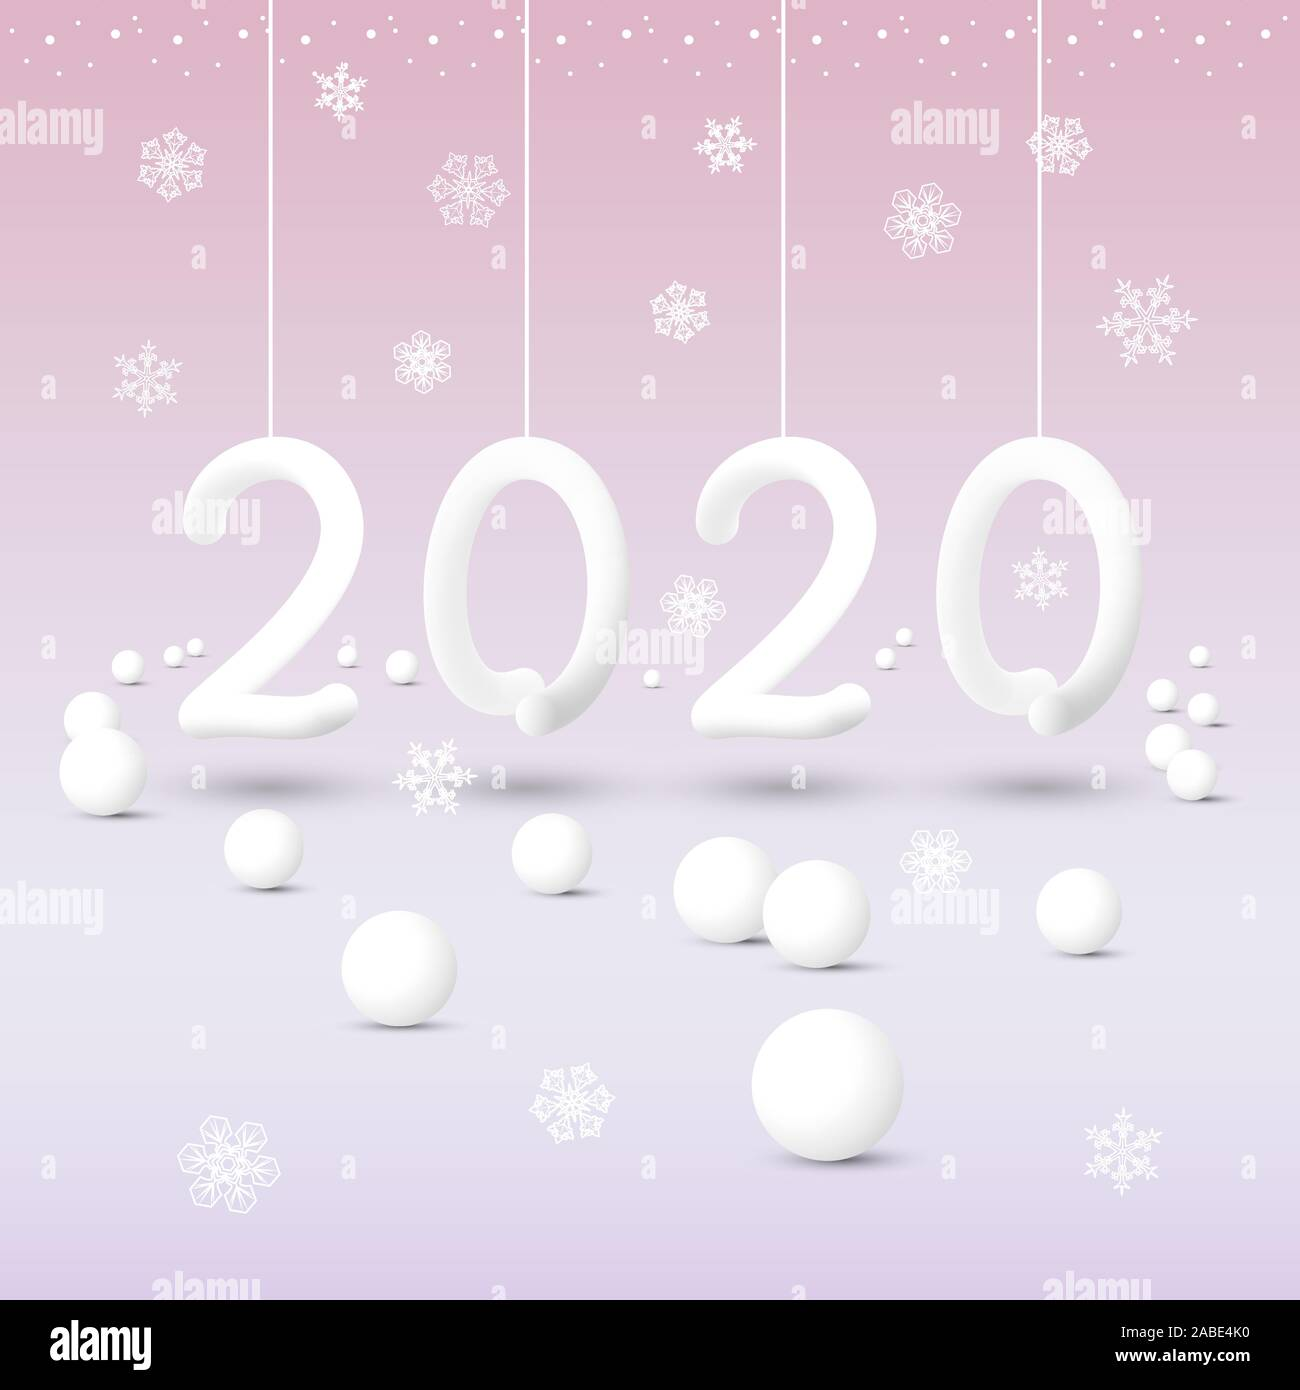 New Year 2020 abstract white numbers hanging on ribbons with snowflakes on a pink background with a gradient Stock Vector